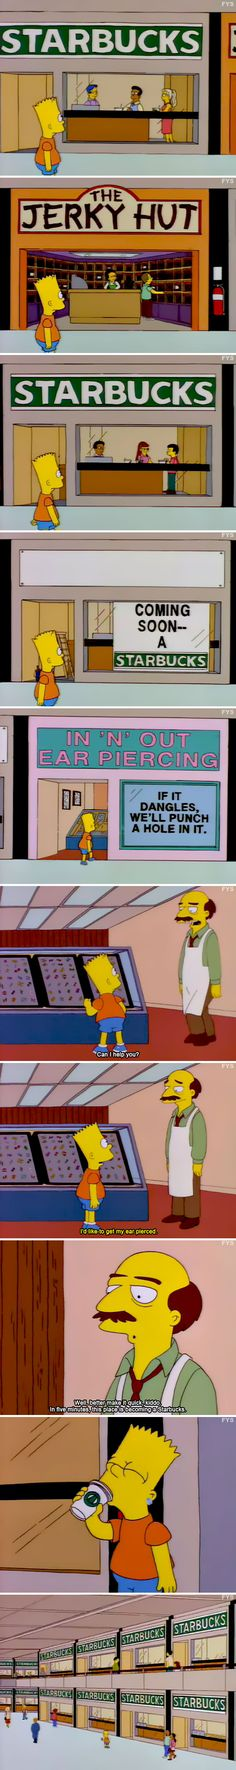 52 Funny Simpsons Jokes That You Can't Help But Laugh At - Funny Gallery